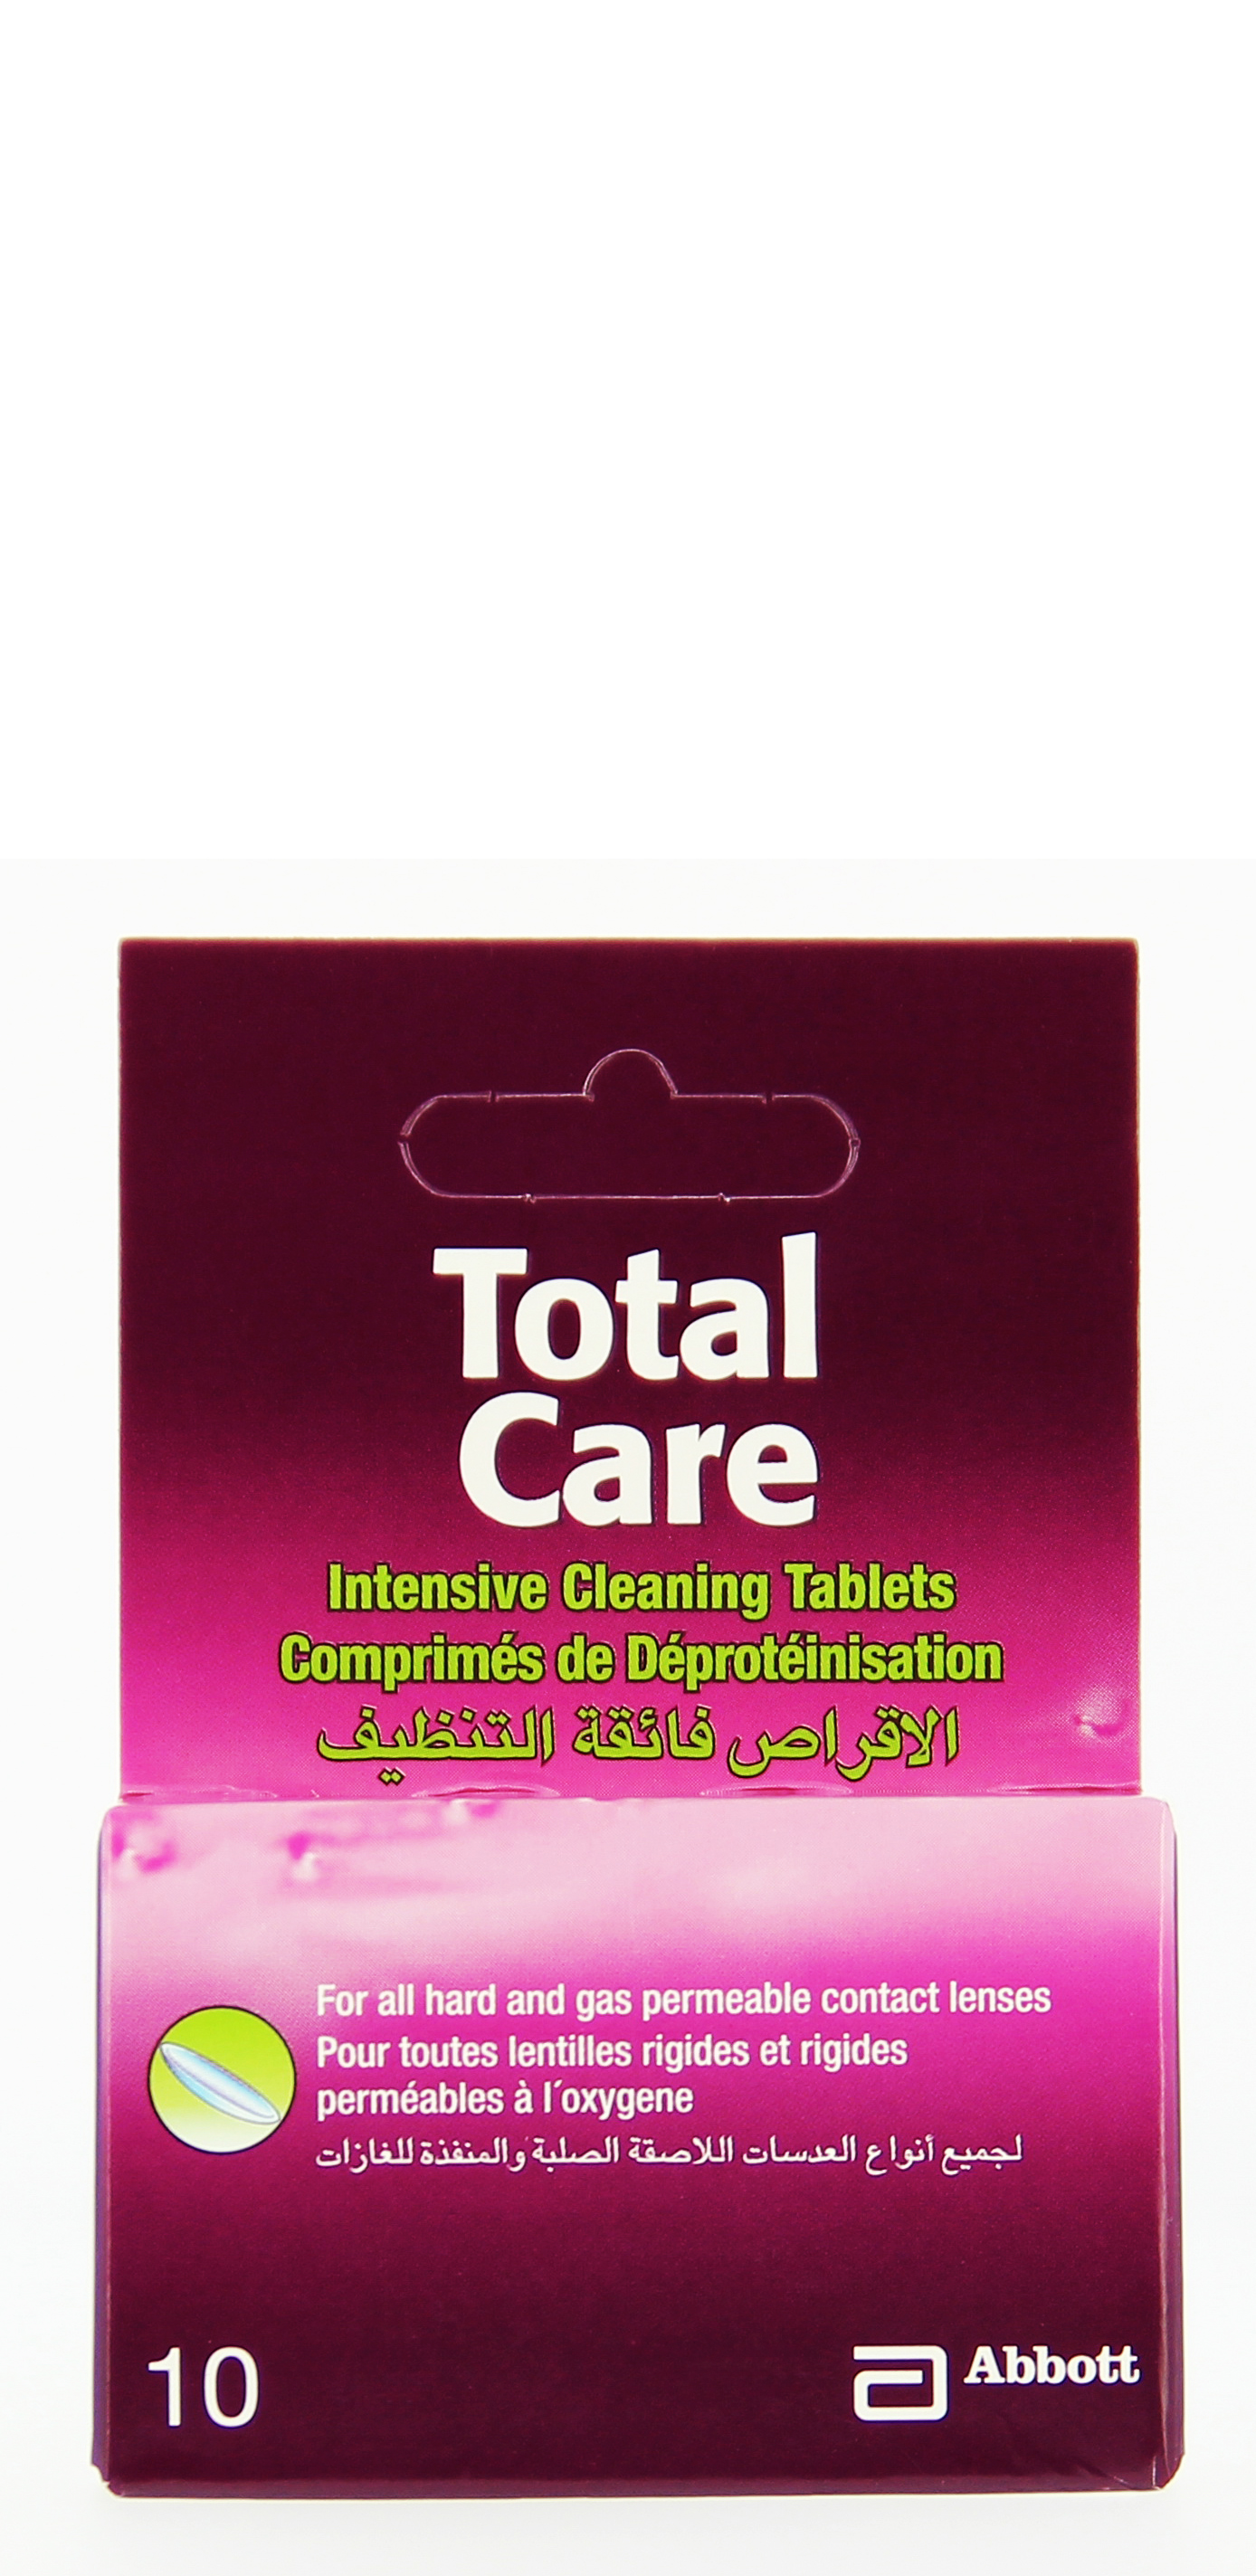 TOTALCARE DEPROTEINISATION